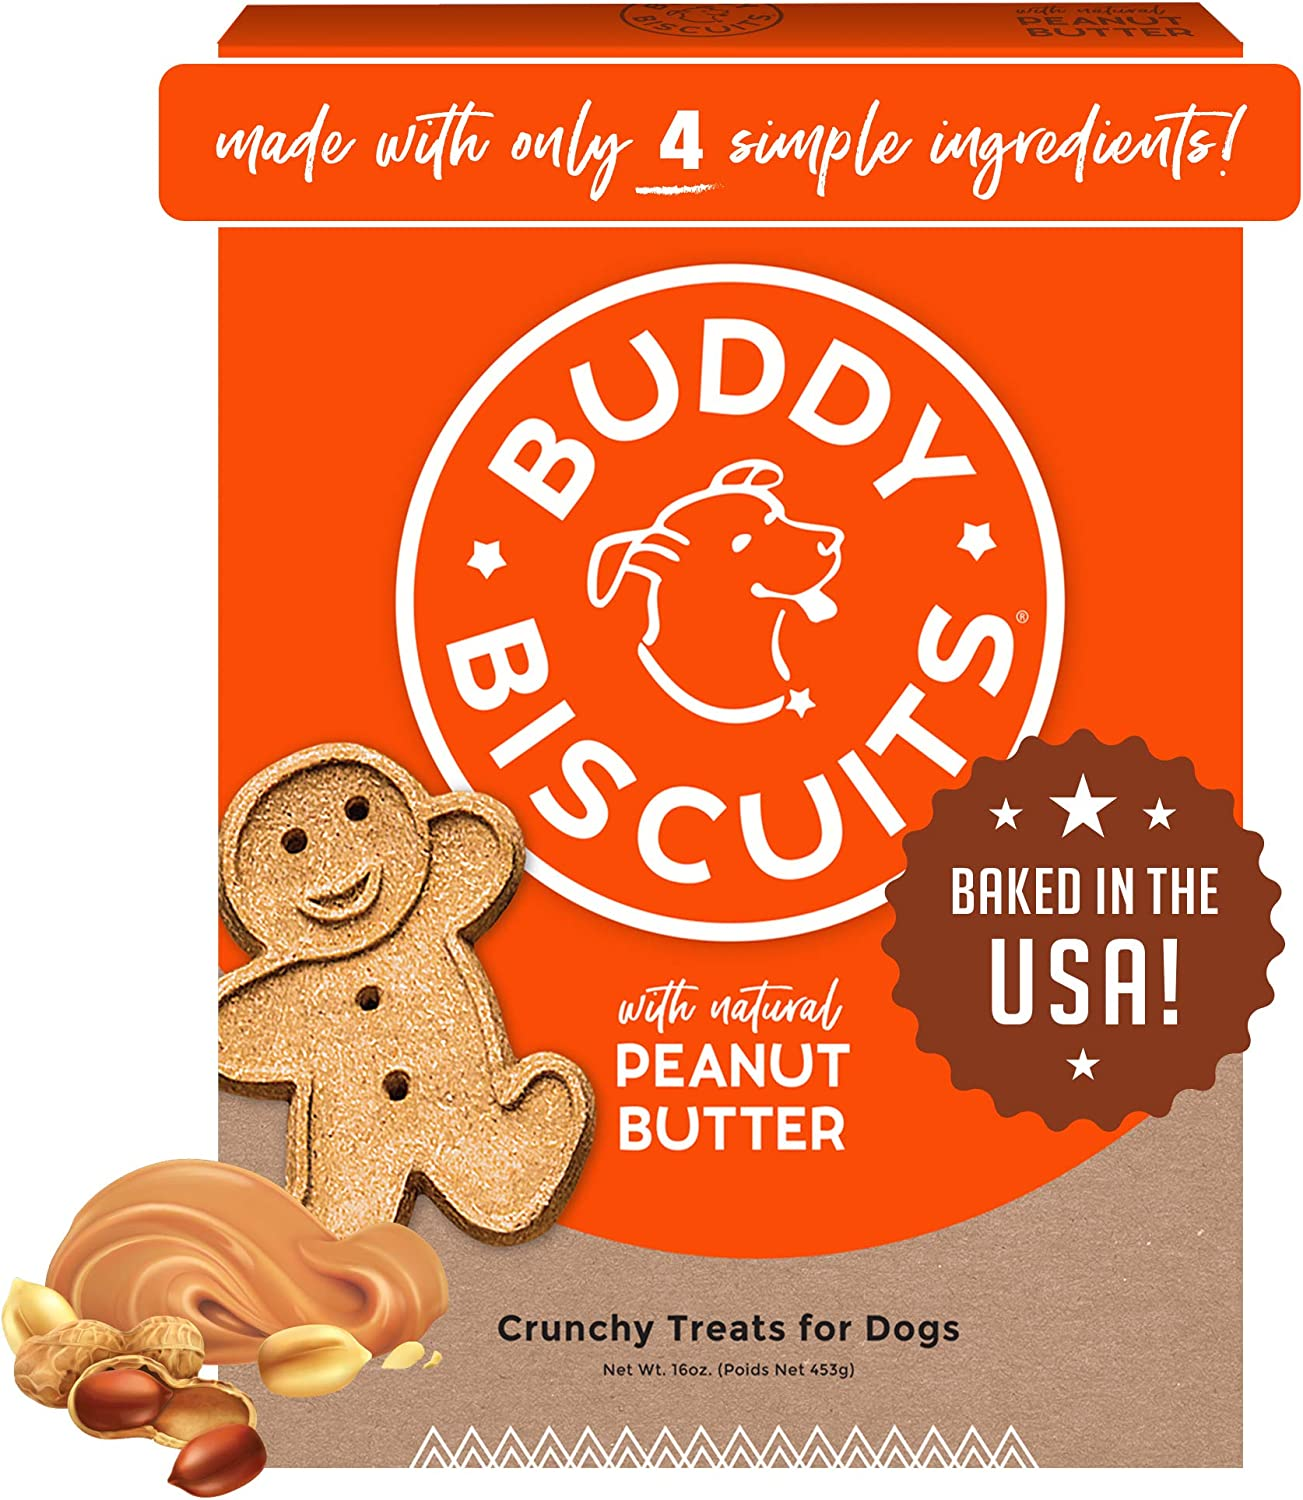 Buddy Biscuits Oven Baked Healthy Dog Treats, Crunchy, Whole Grain and Baked in the USA